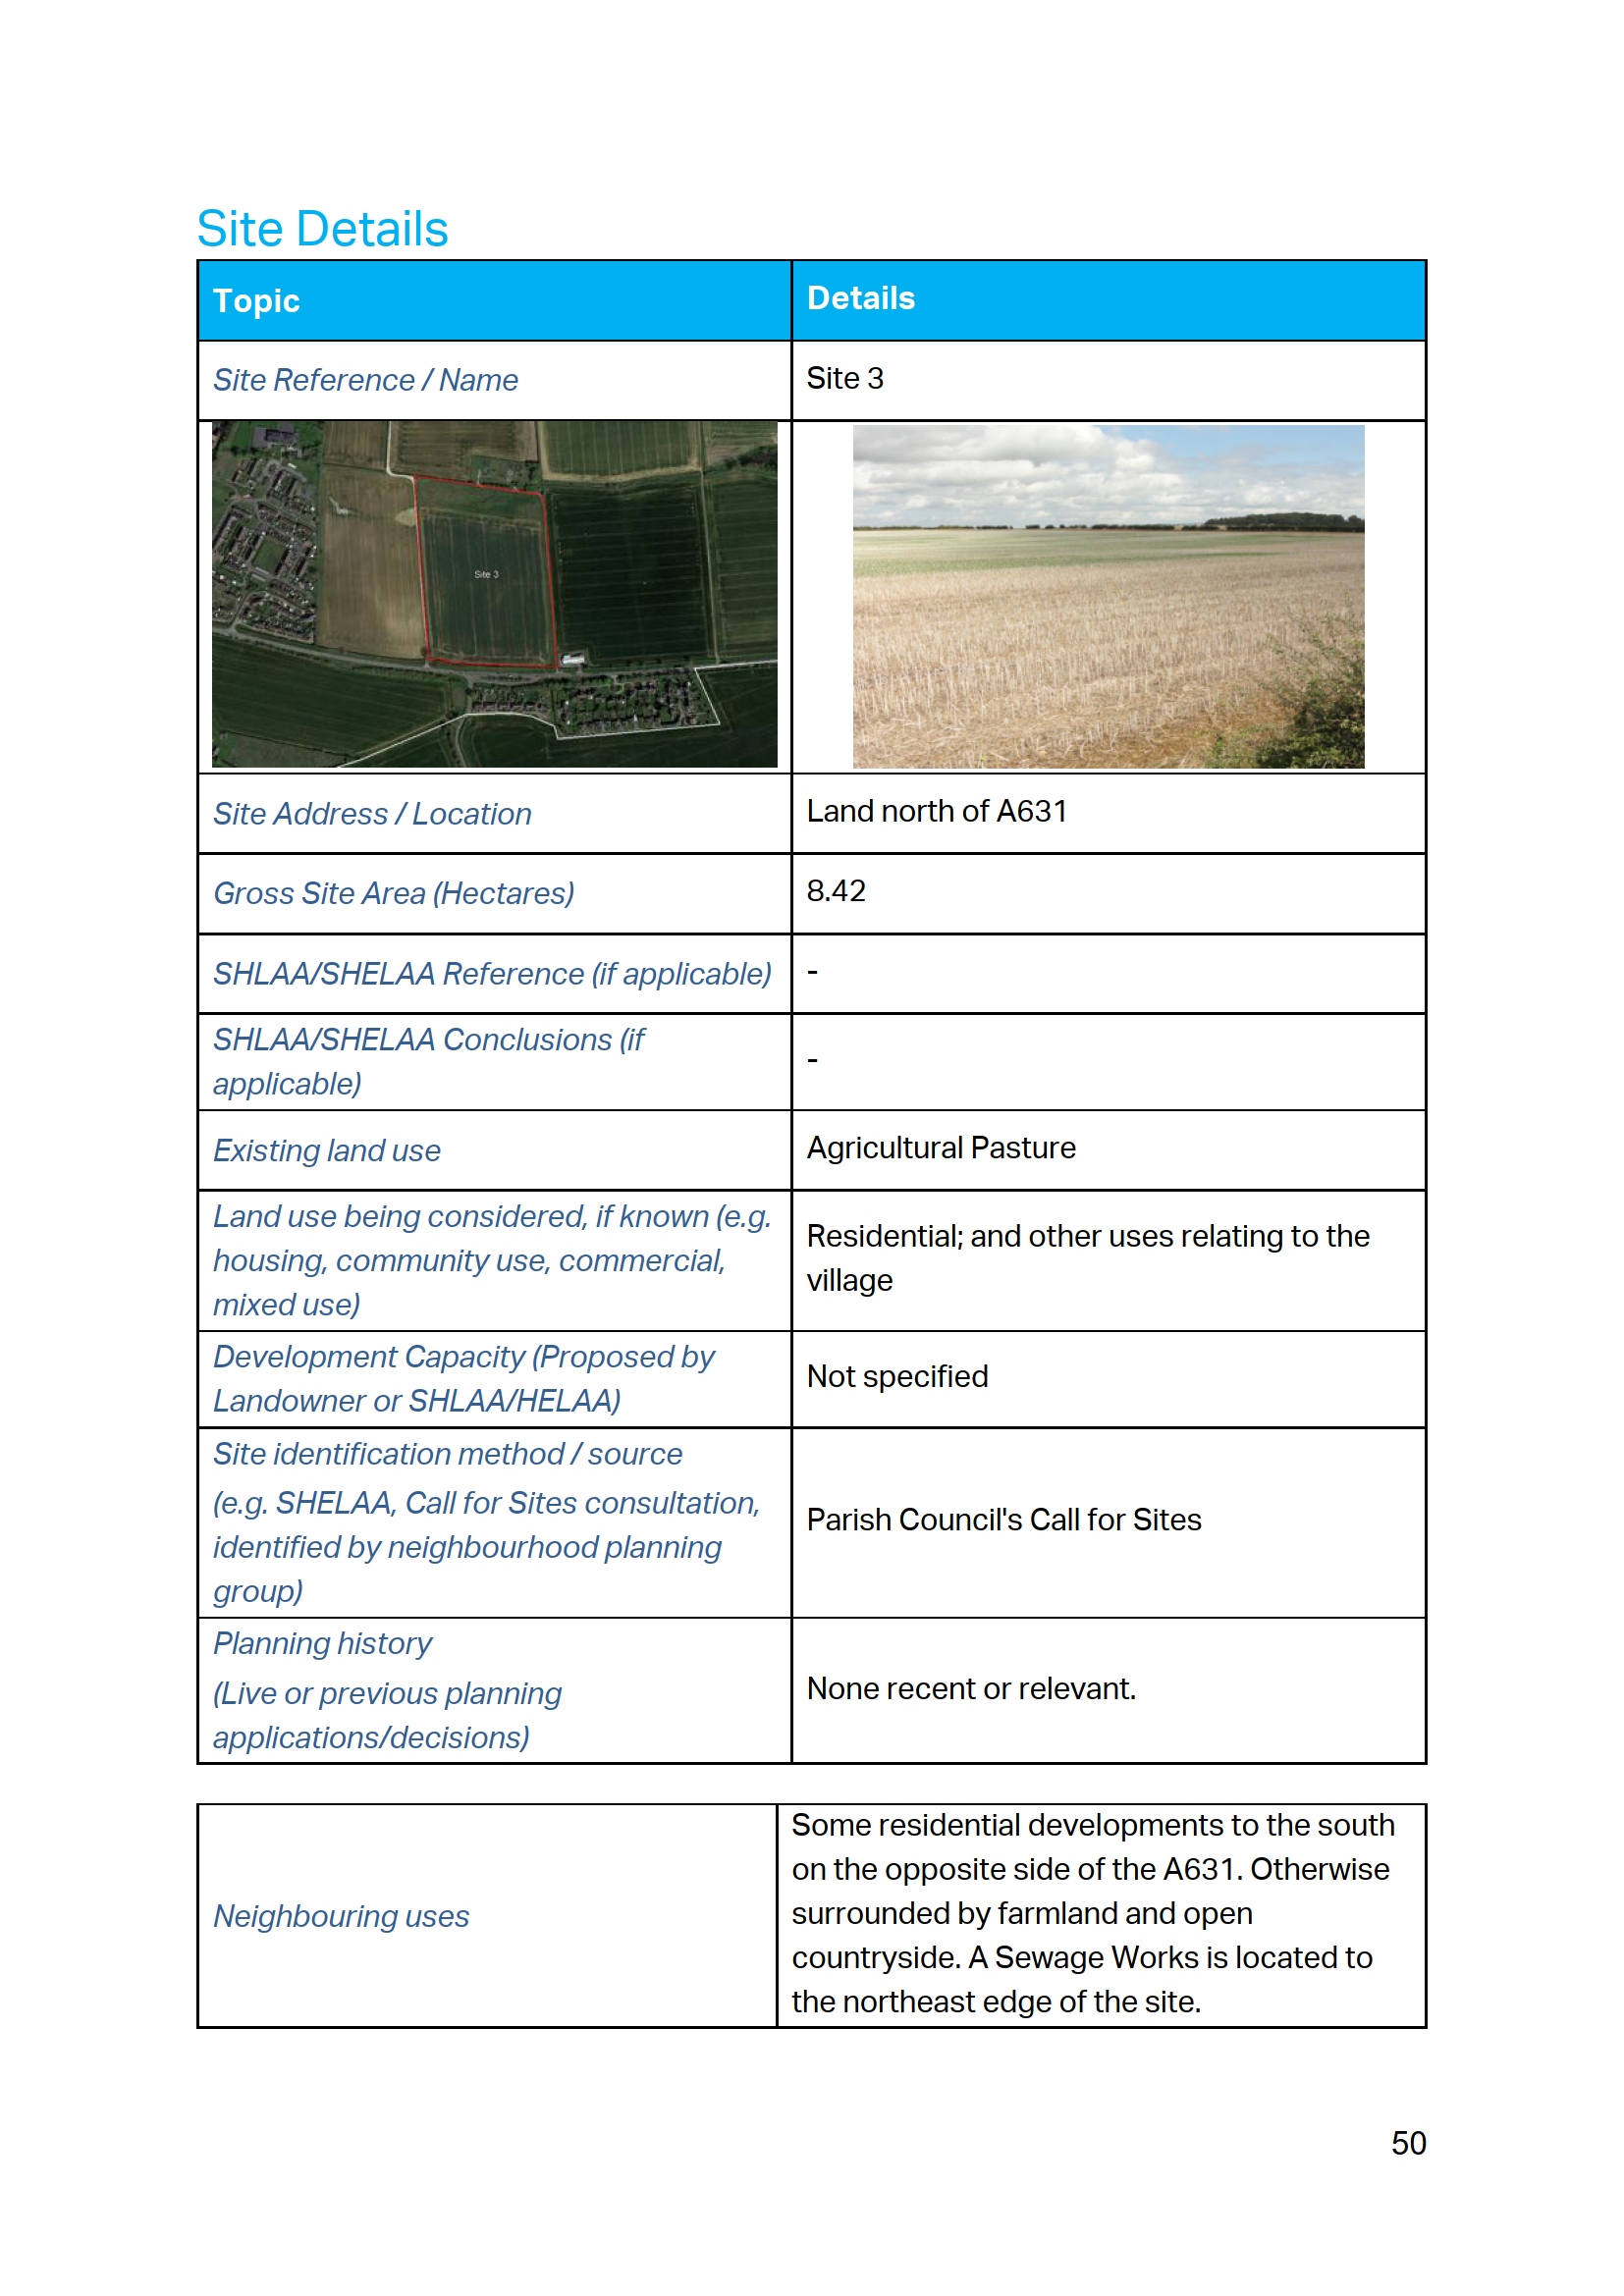 Hemswell_Cliff_Site_Options_and_Assessment_Final_041119-2_50.png